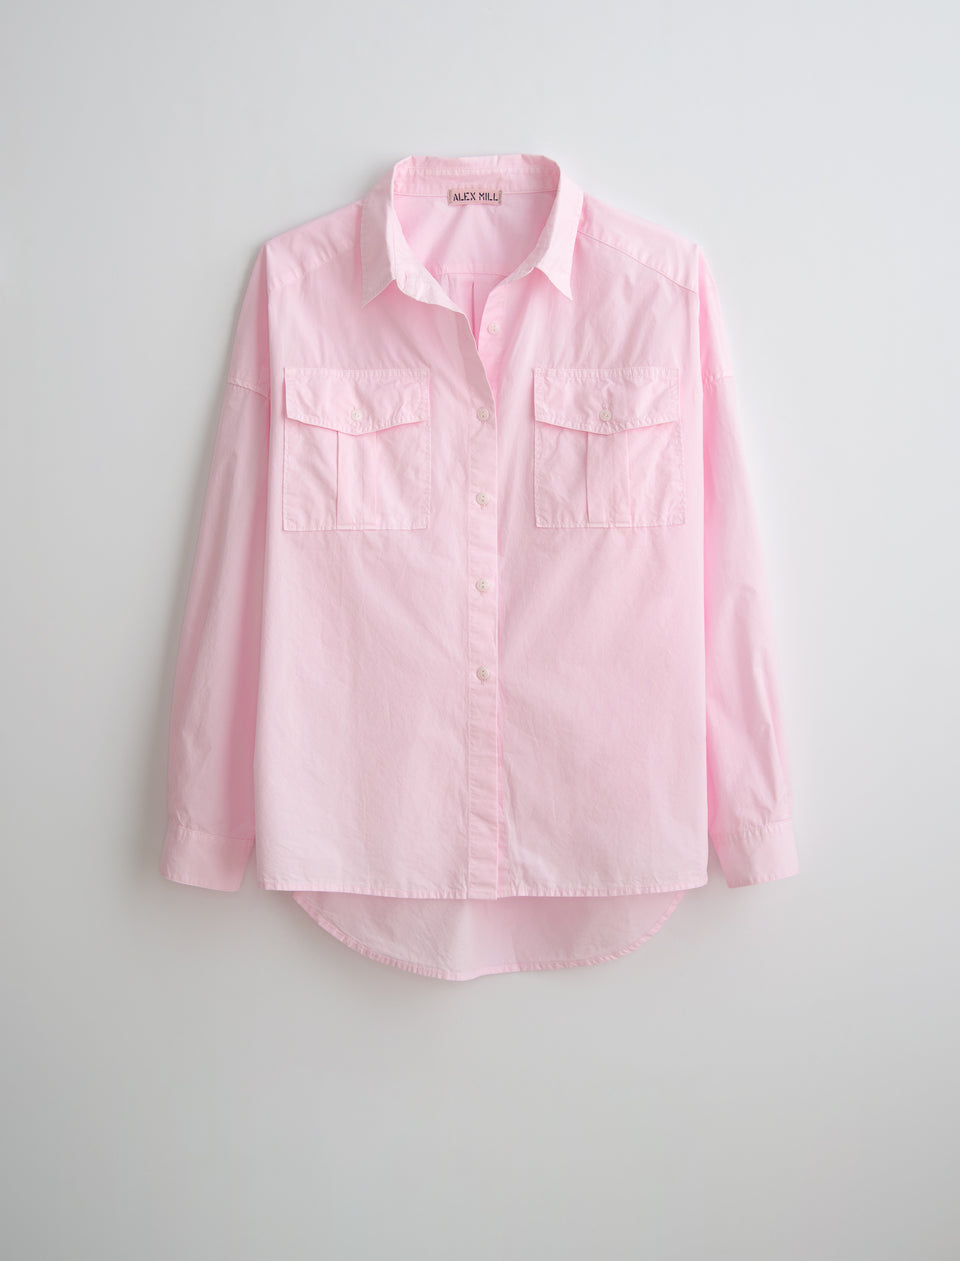 Oversized Button-Down in